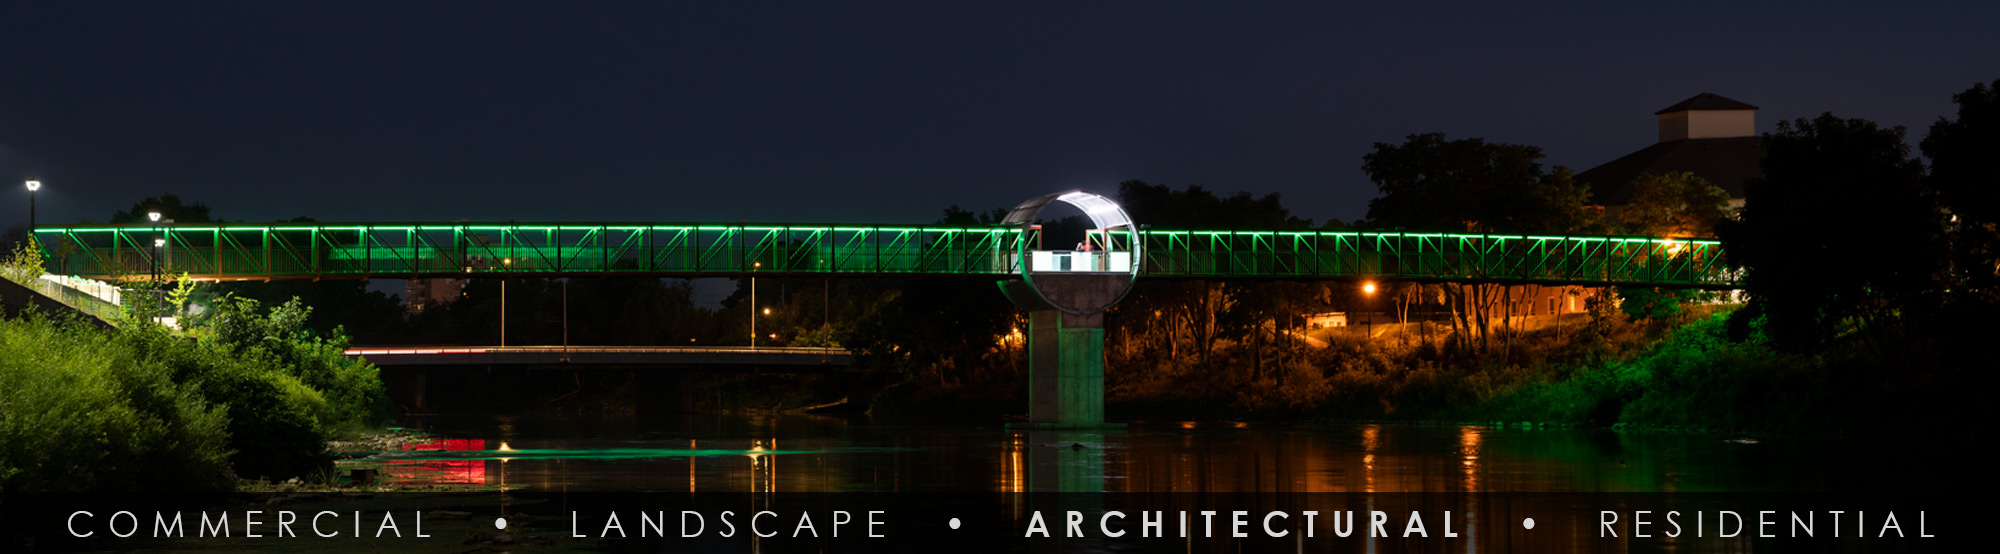 SGi LED Architectural Bridge Lighting Cambridge Bridge